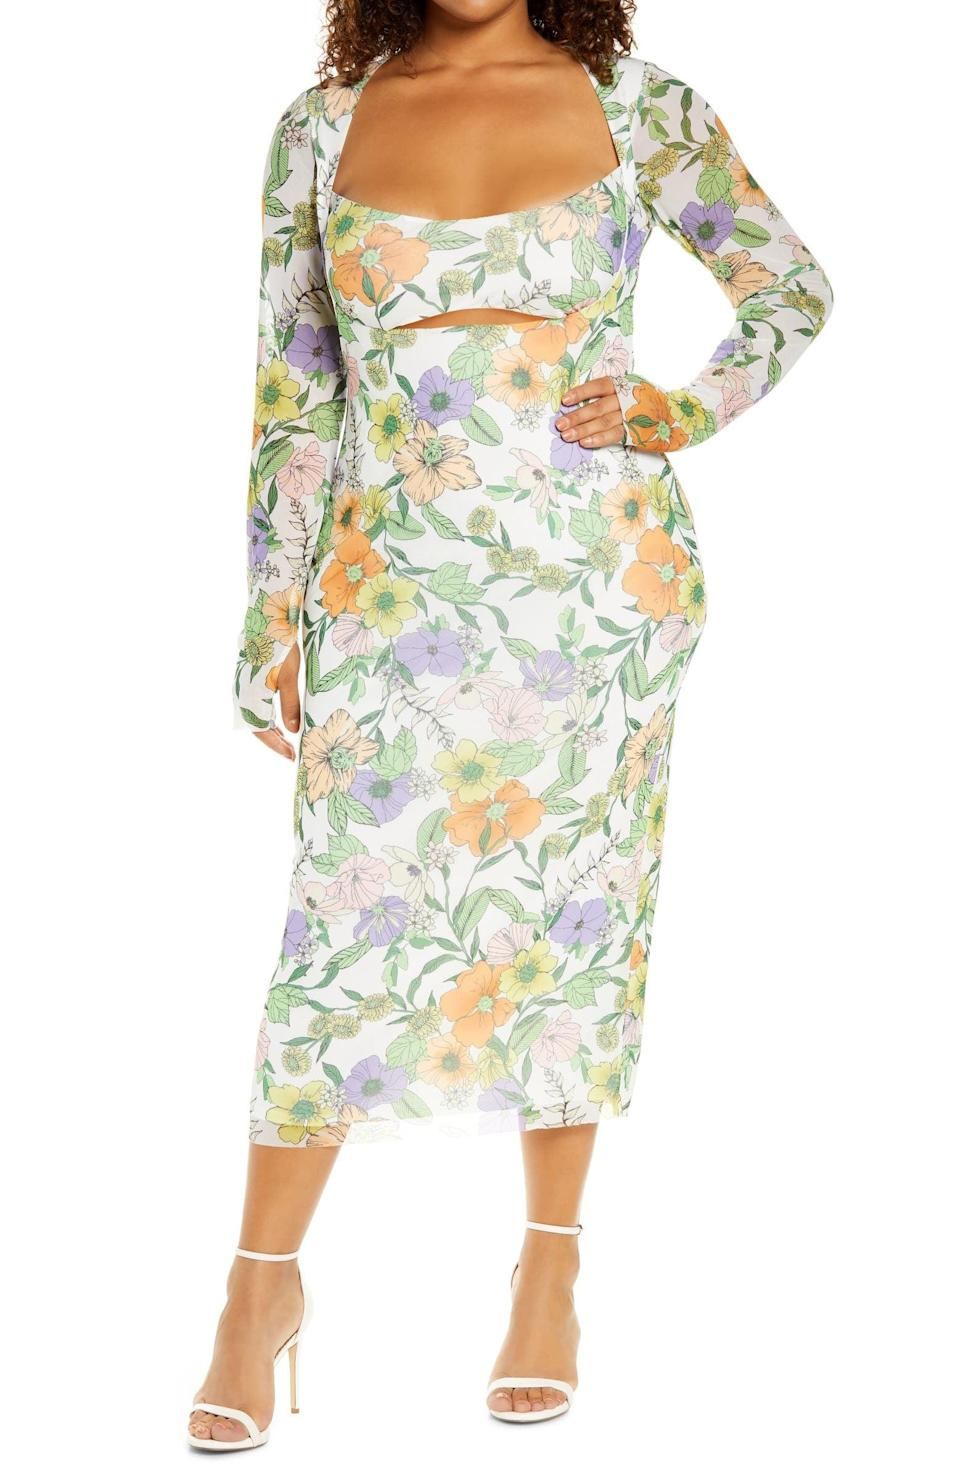 <p>When wearing this <span>Kellen Cutout Midi Dress</span> ($50, originally $88), keep everything else pared down since it makes such a loud floral statement. Pair it with a simple chain and some minimal heels.</p>